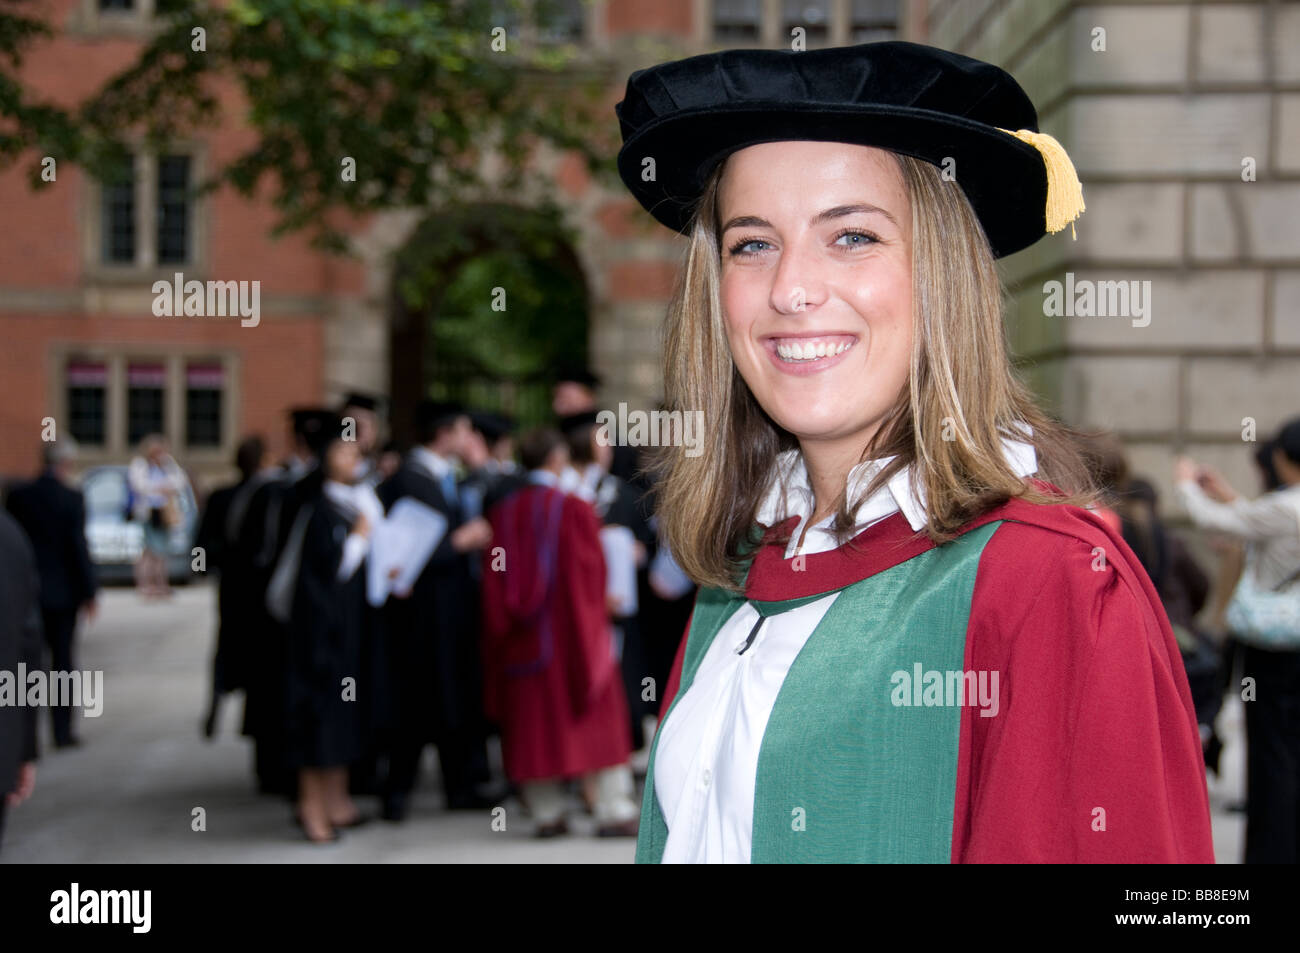 University student in Doctorate graduation gown Stock Photo ...